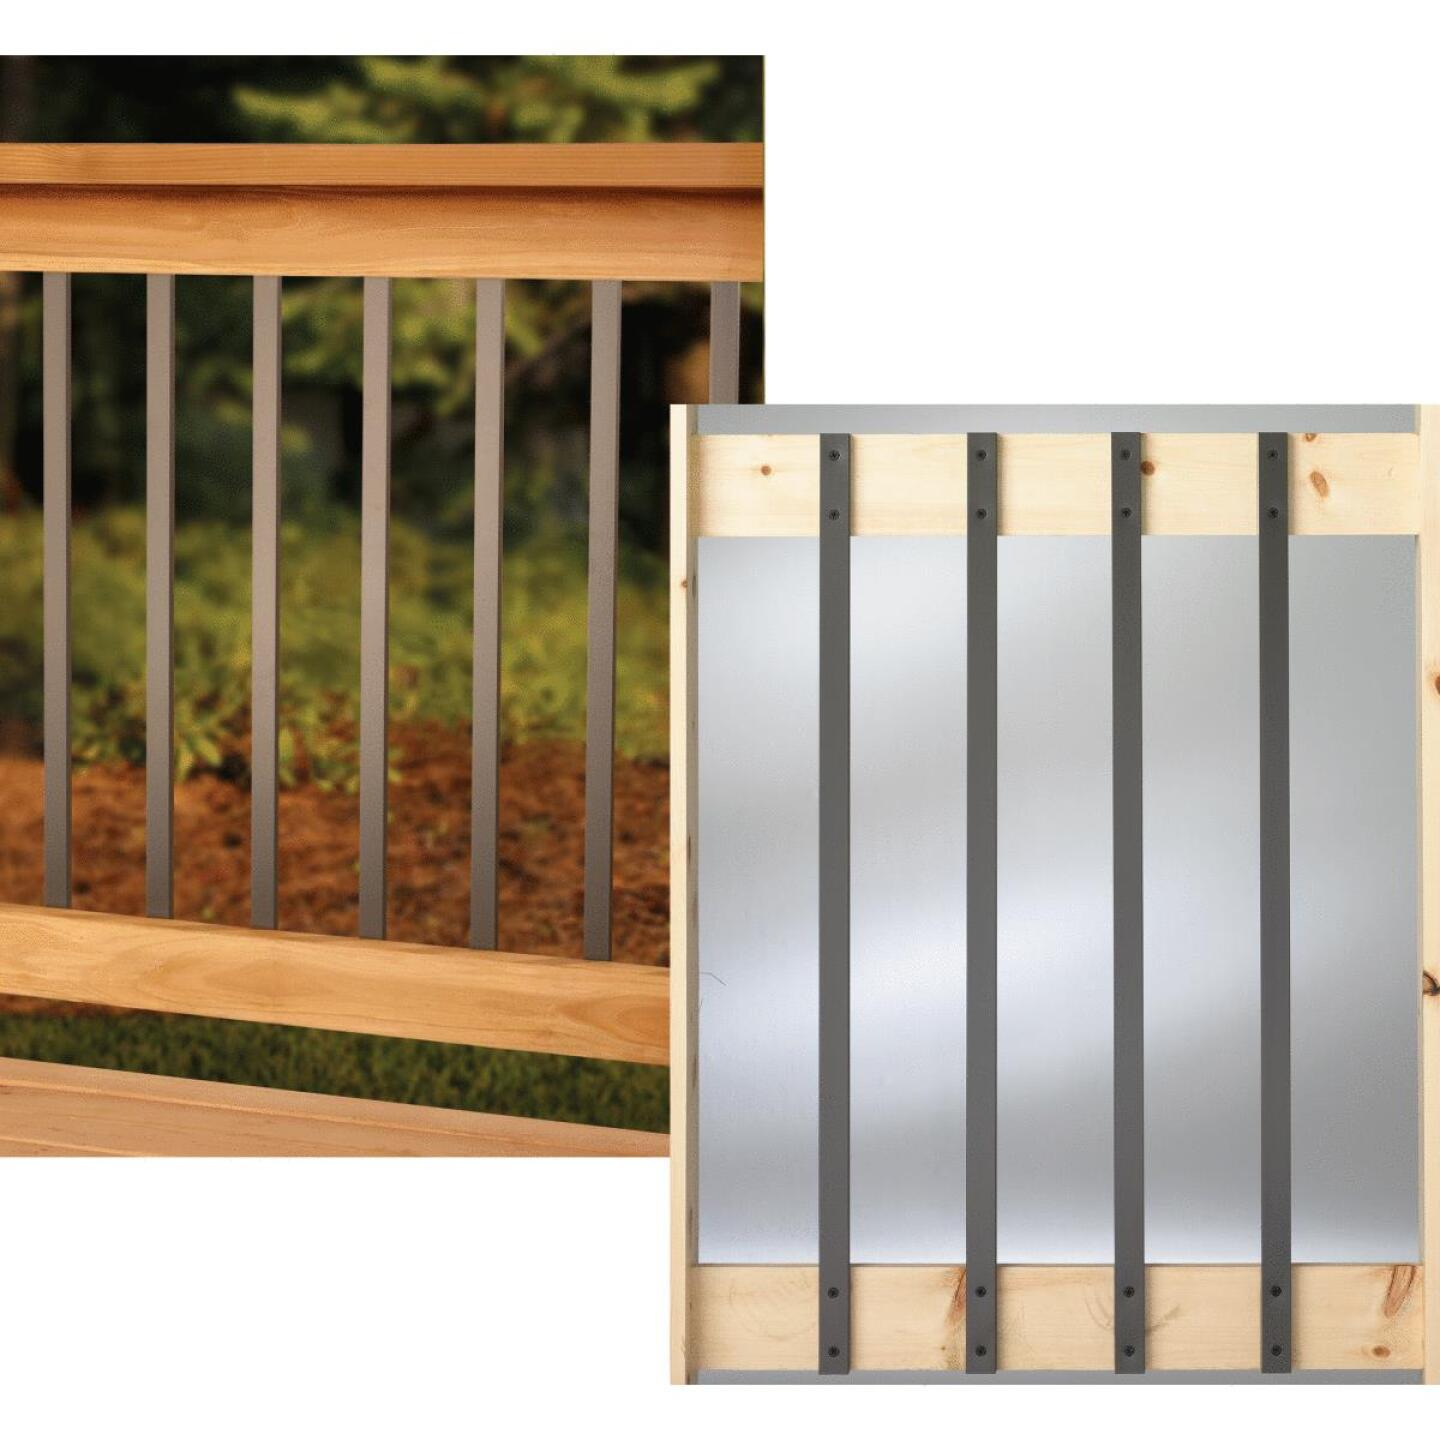 Deckorators 32 In. Bronze Aluminum Traditional Baluster (10-Pack) Image 1